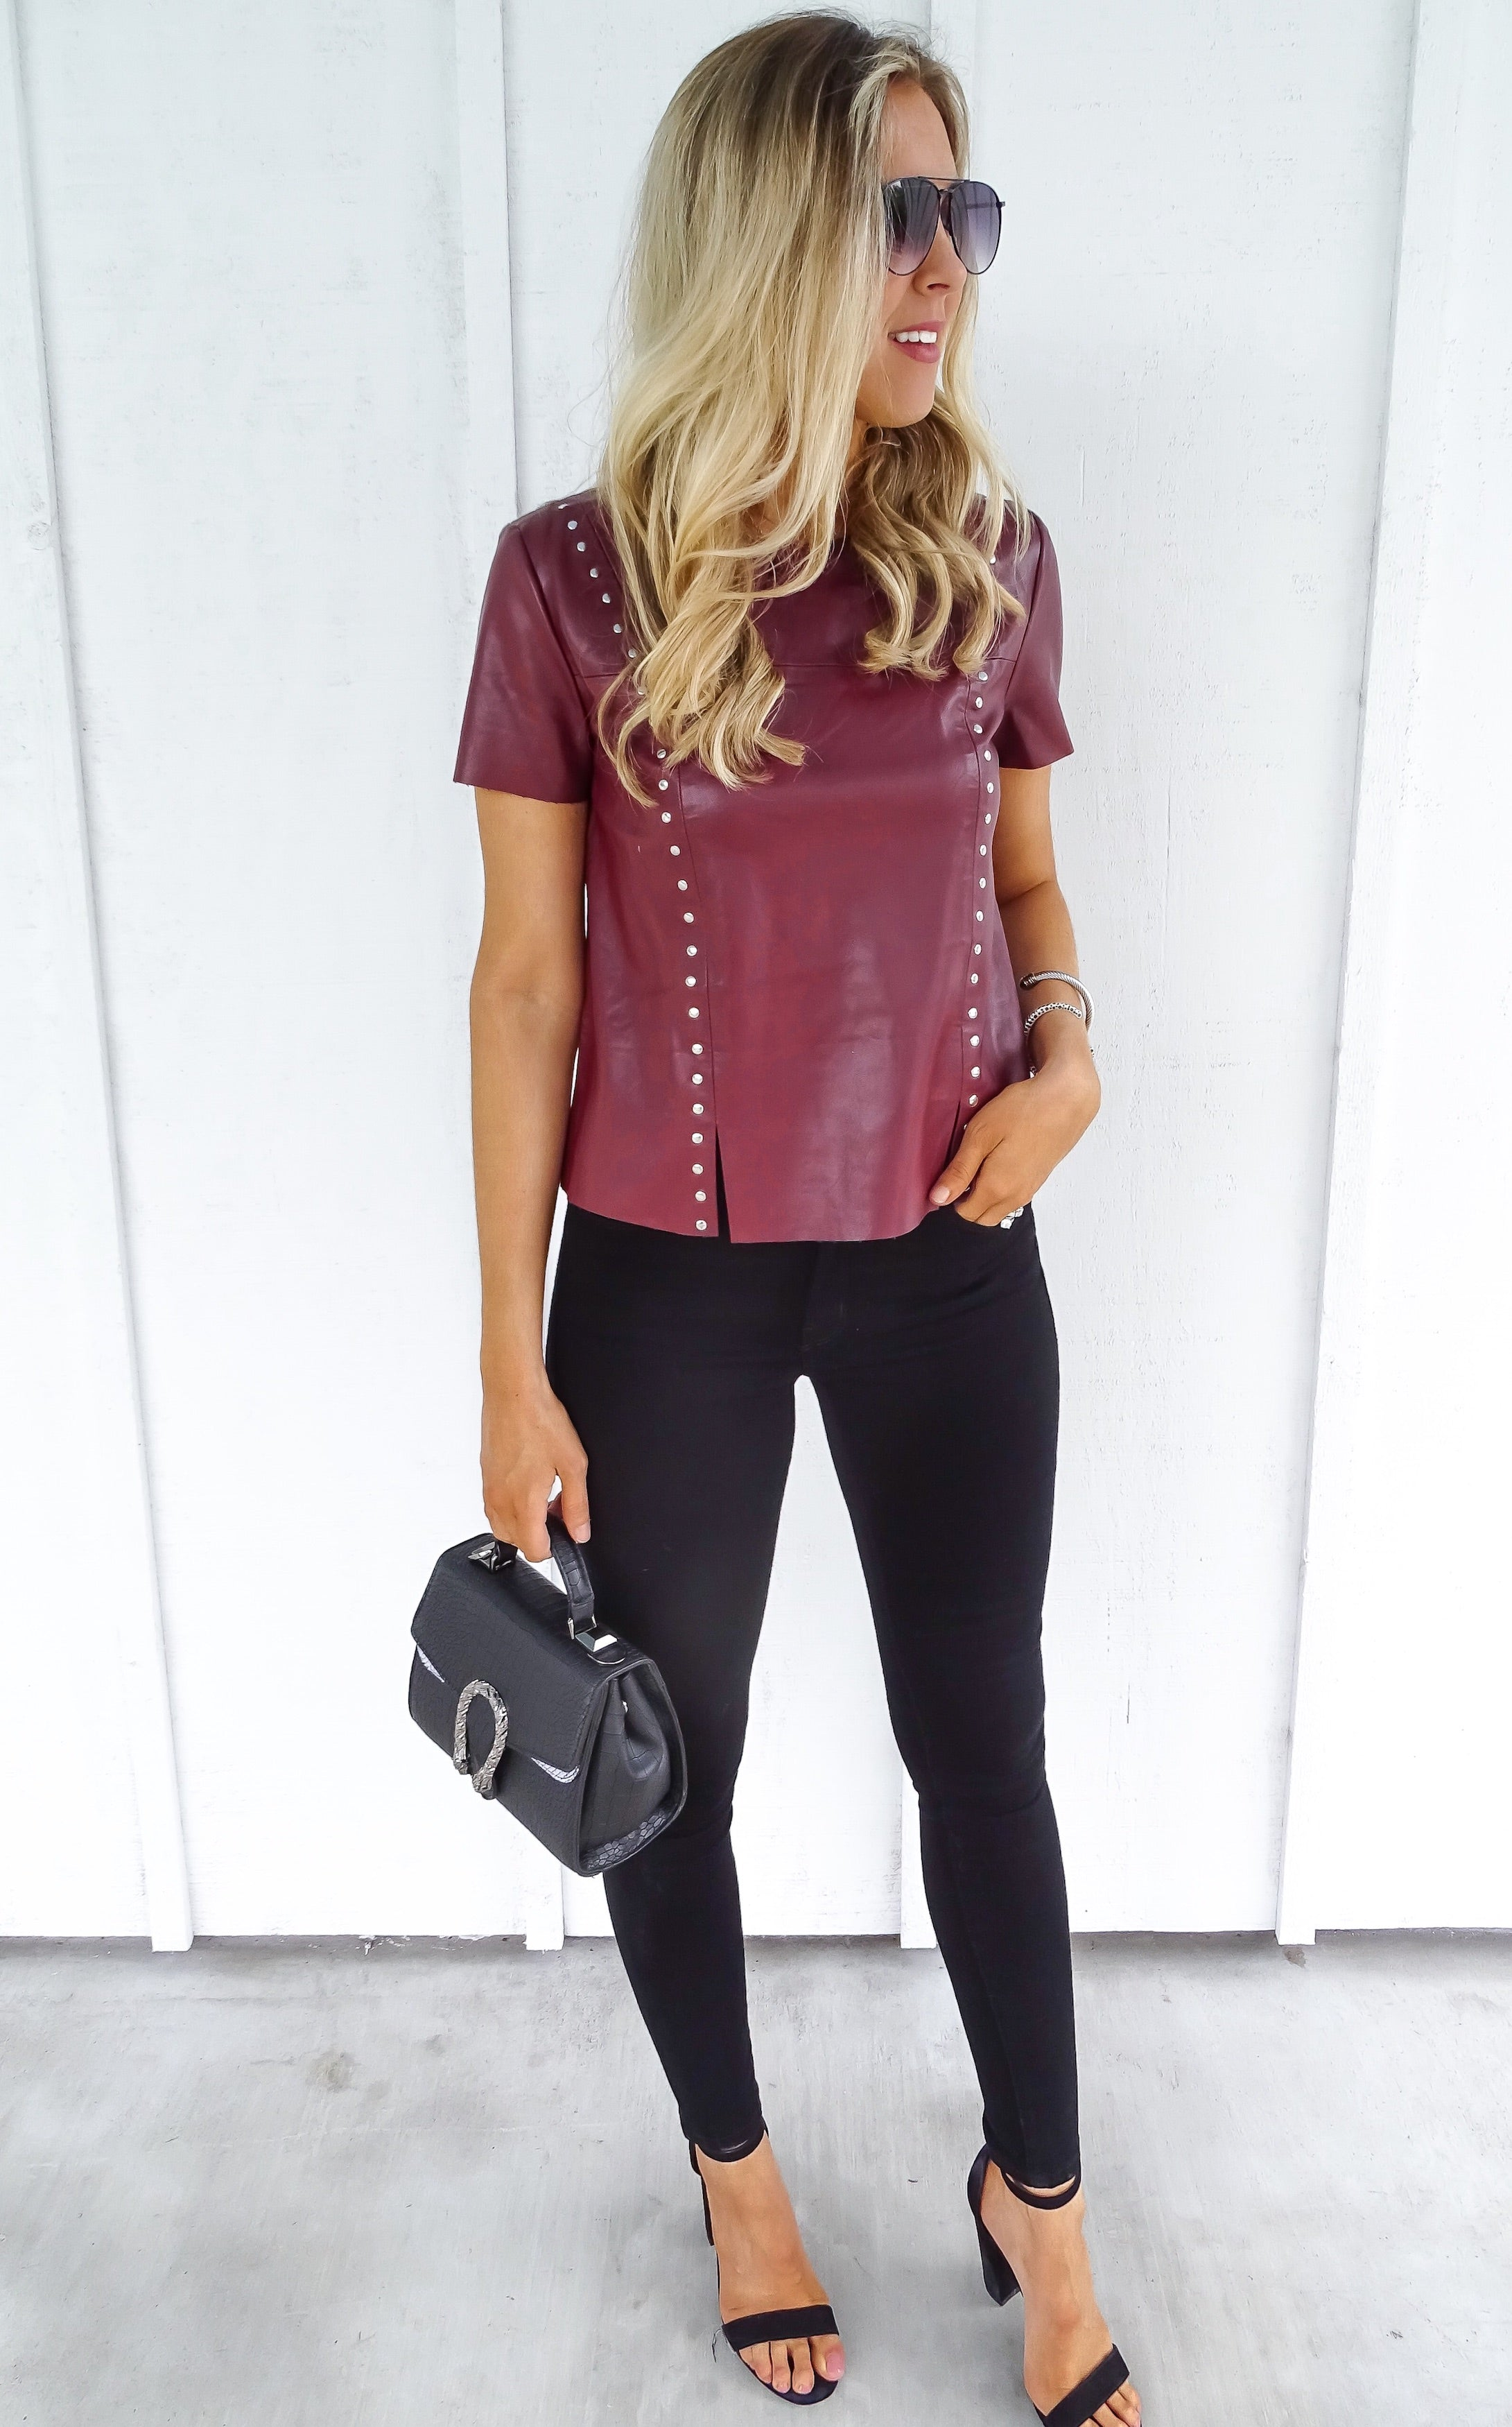 STUDDED LEATHER TOP - OX BLOOD